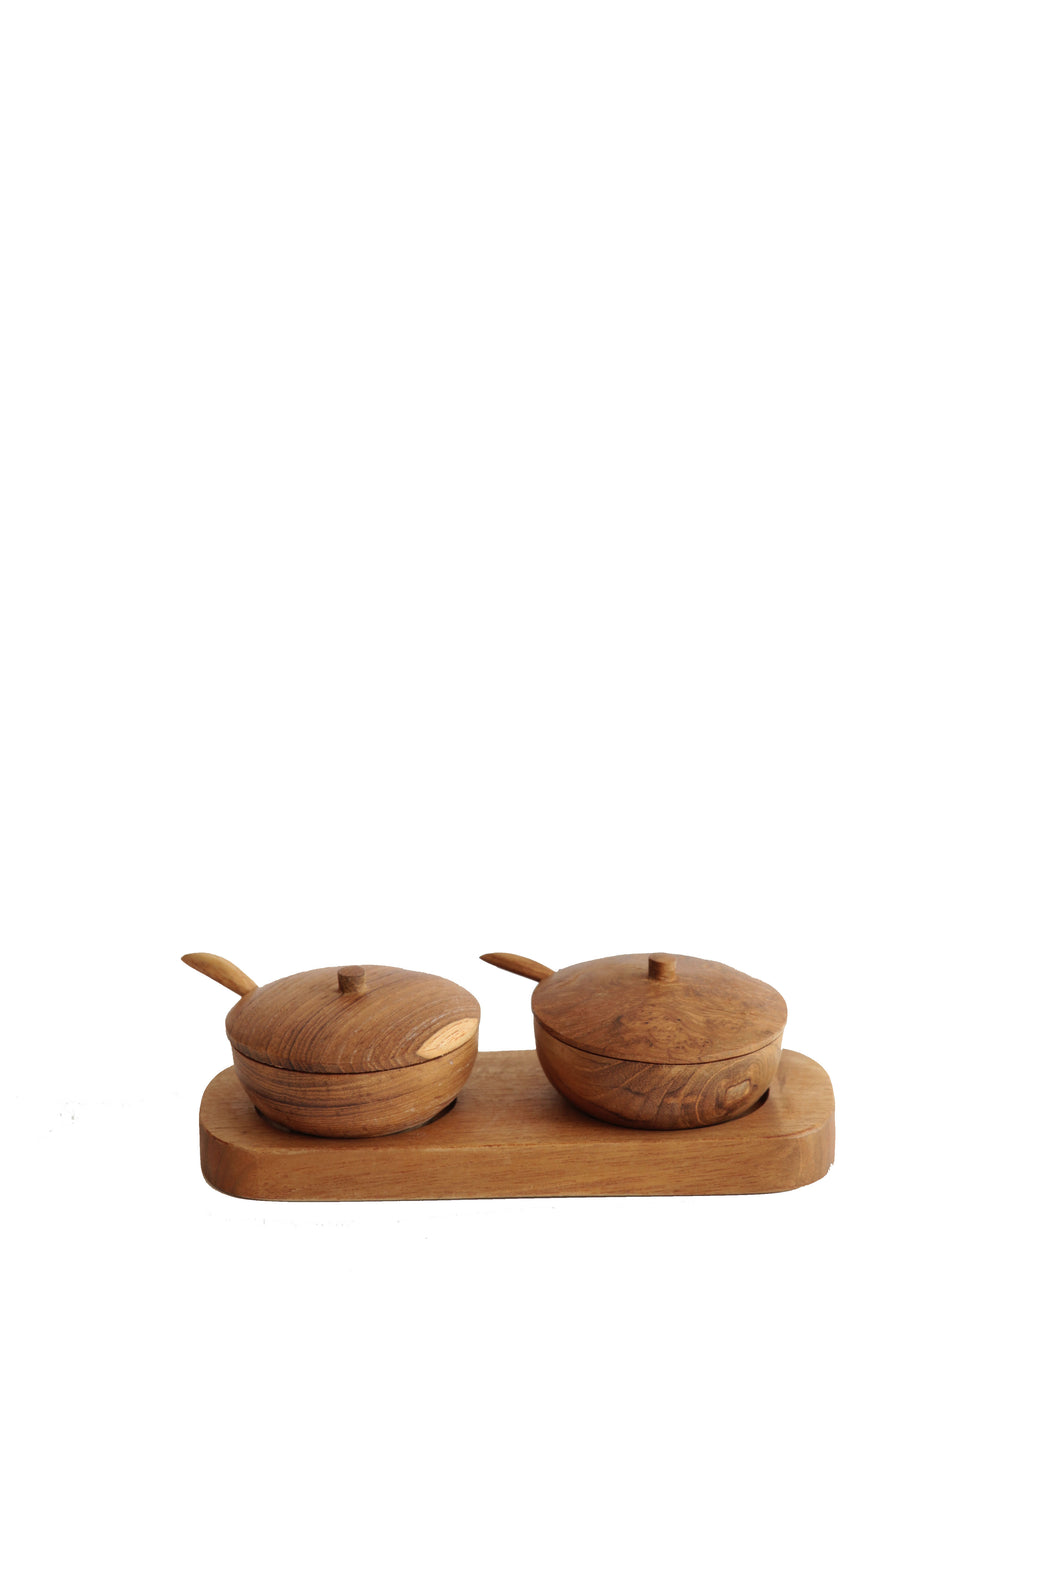 TEAK WOOD SALT AND PEPPER HOLDERS  WITH SPOONS